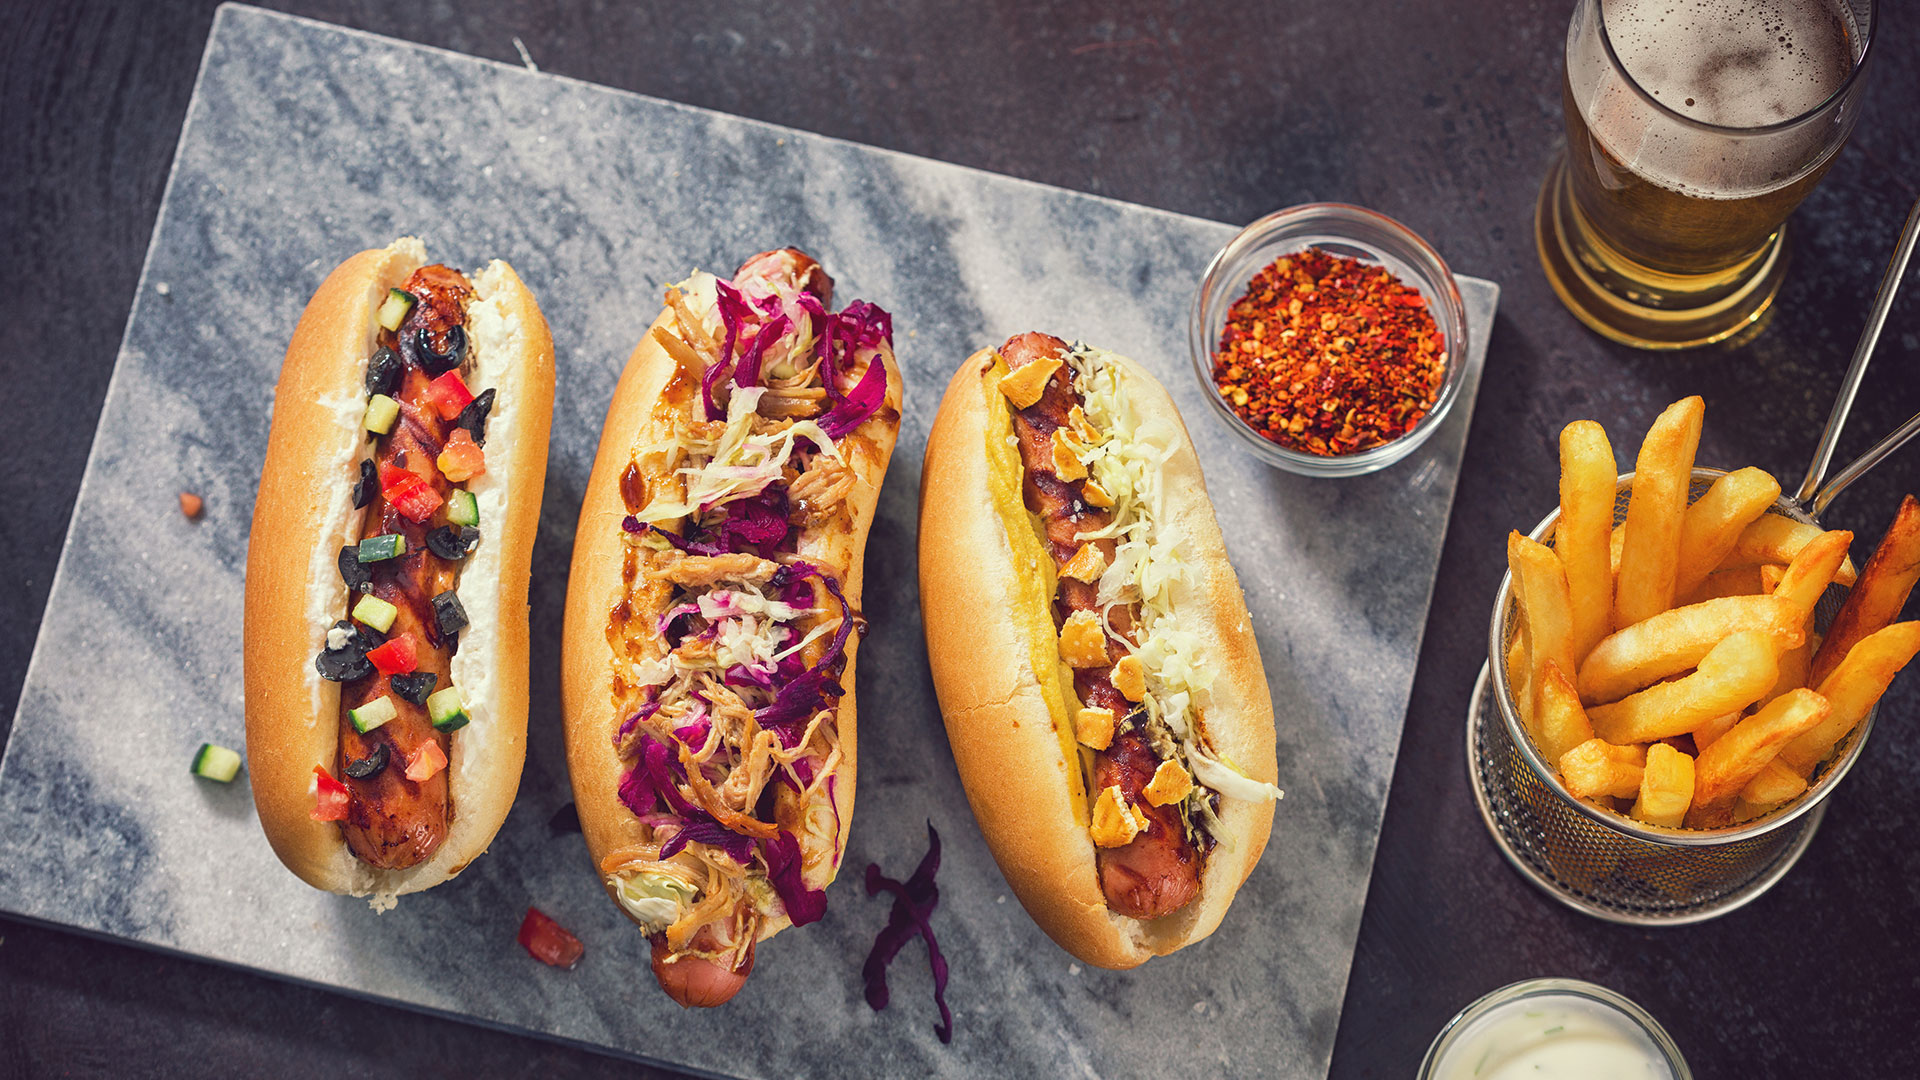 The 5 Best Hot Dogs You Can Buy